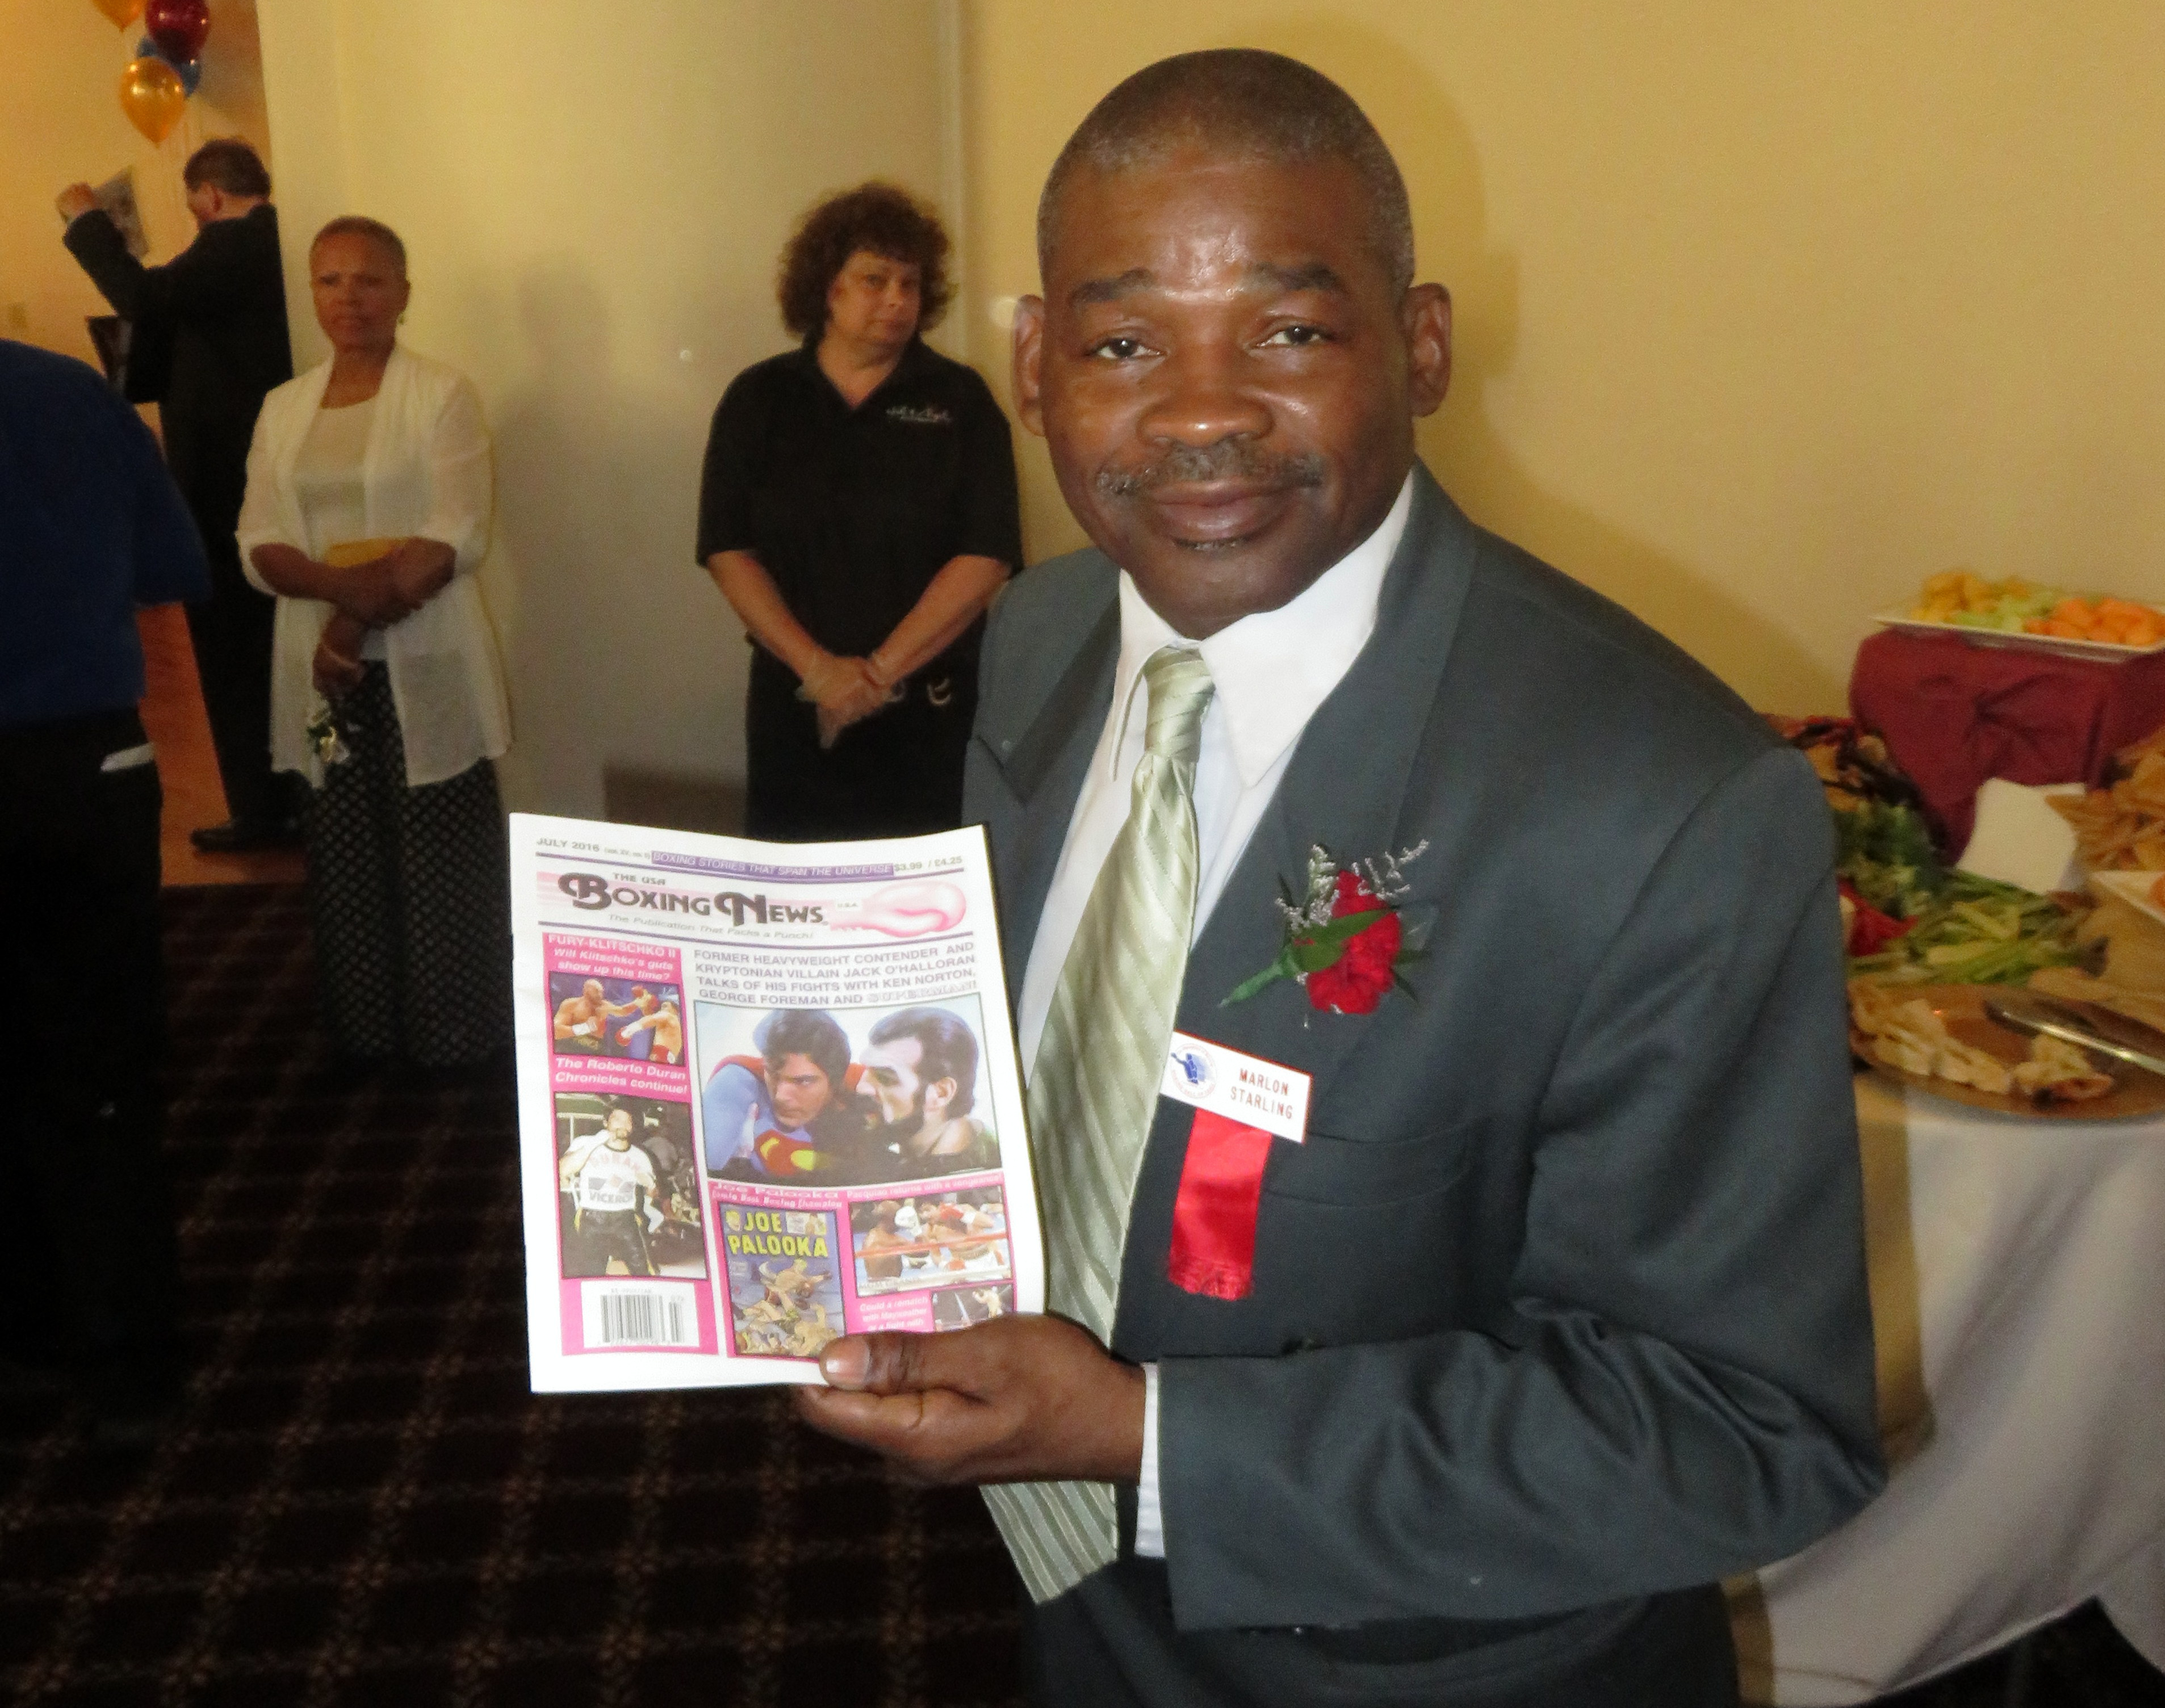 FINALThe USA Boxing News with former WBA welterweight chamion of the world Marlon (Magic Man) Starling.